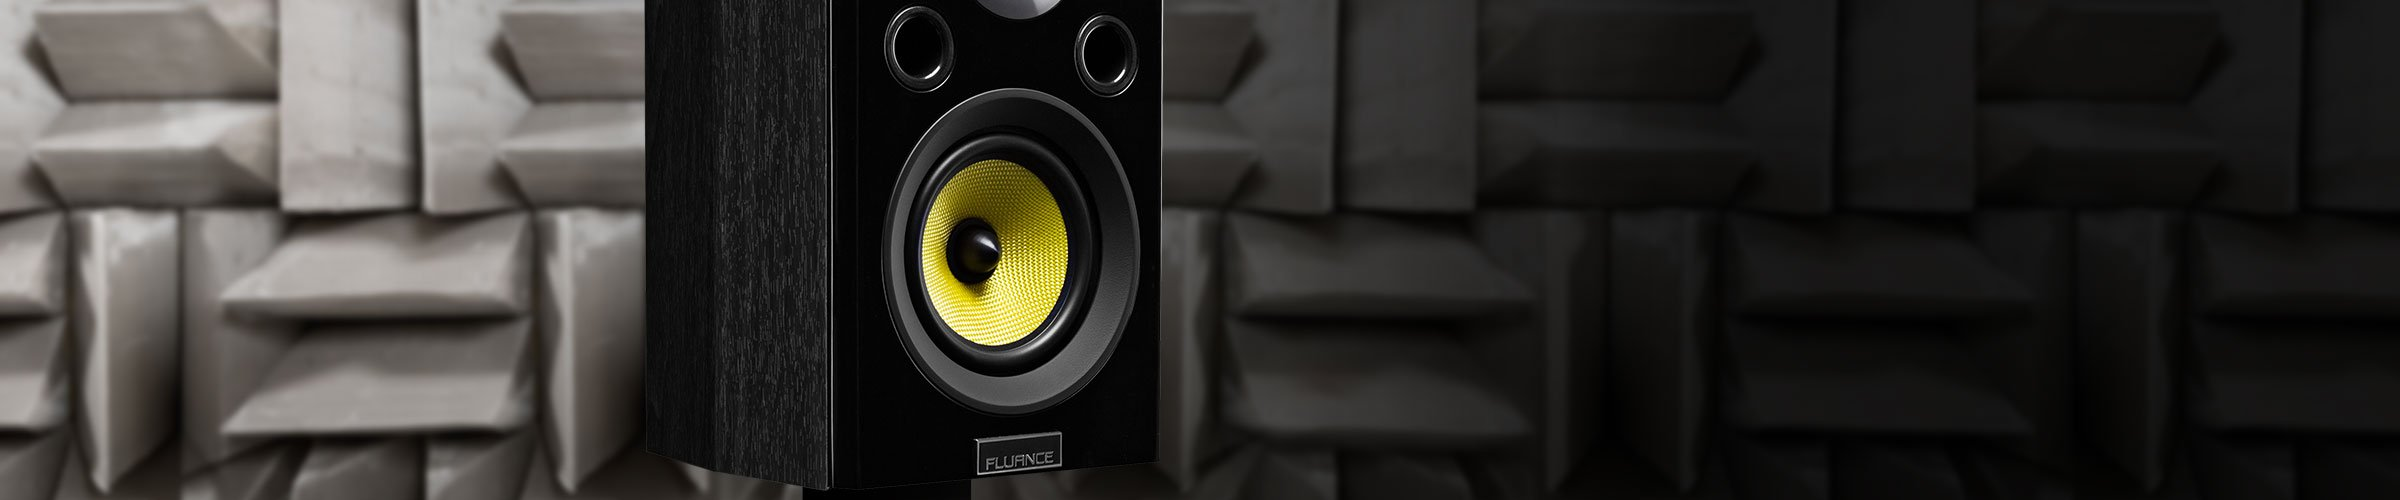 Fluance signature series surround sound speakers midrange